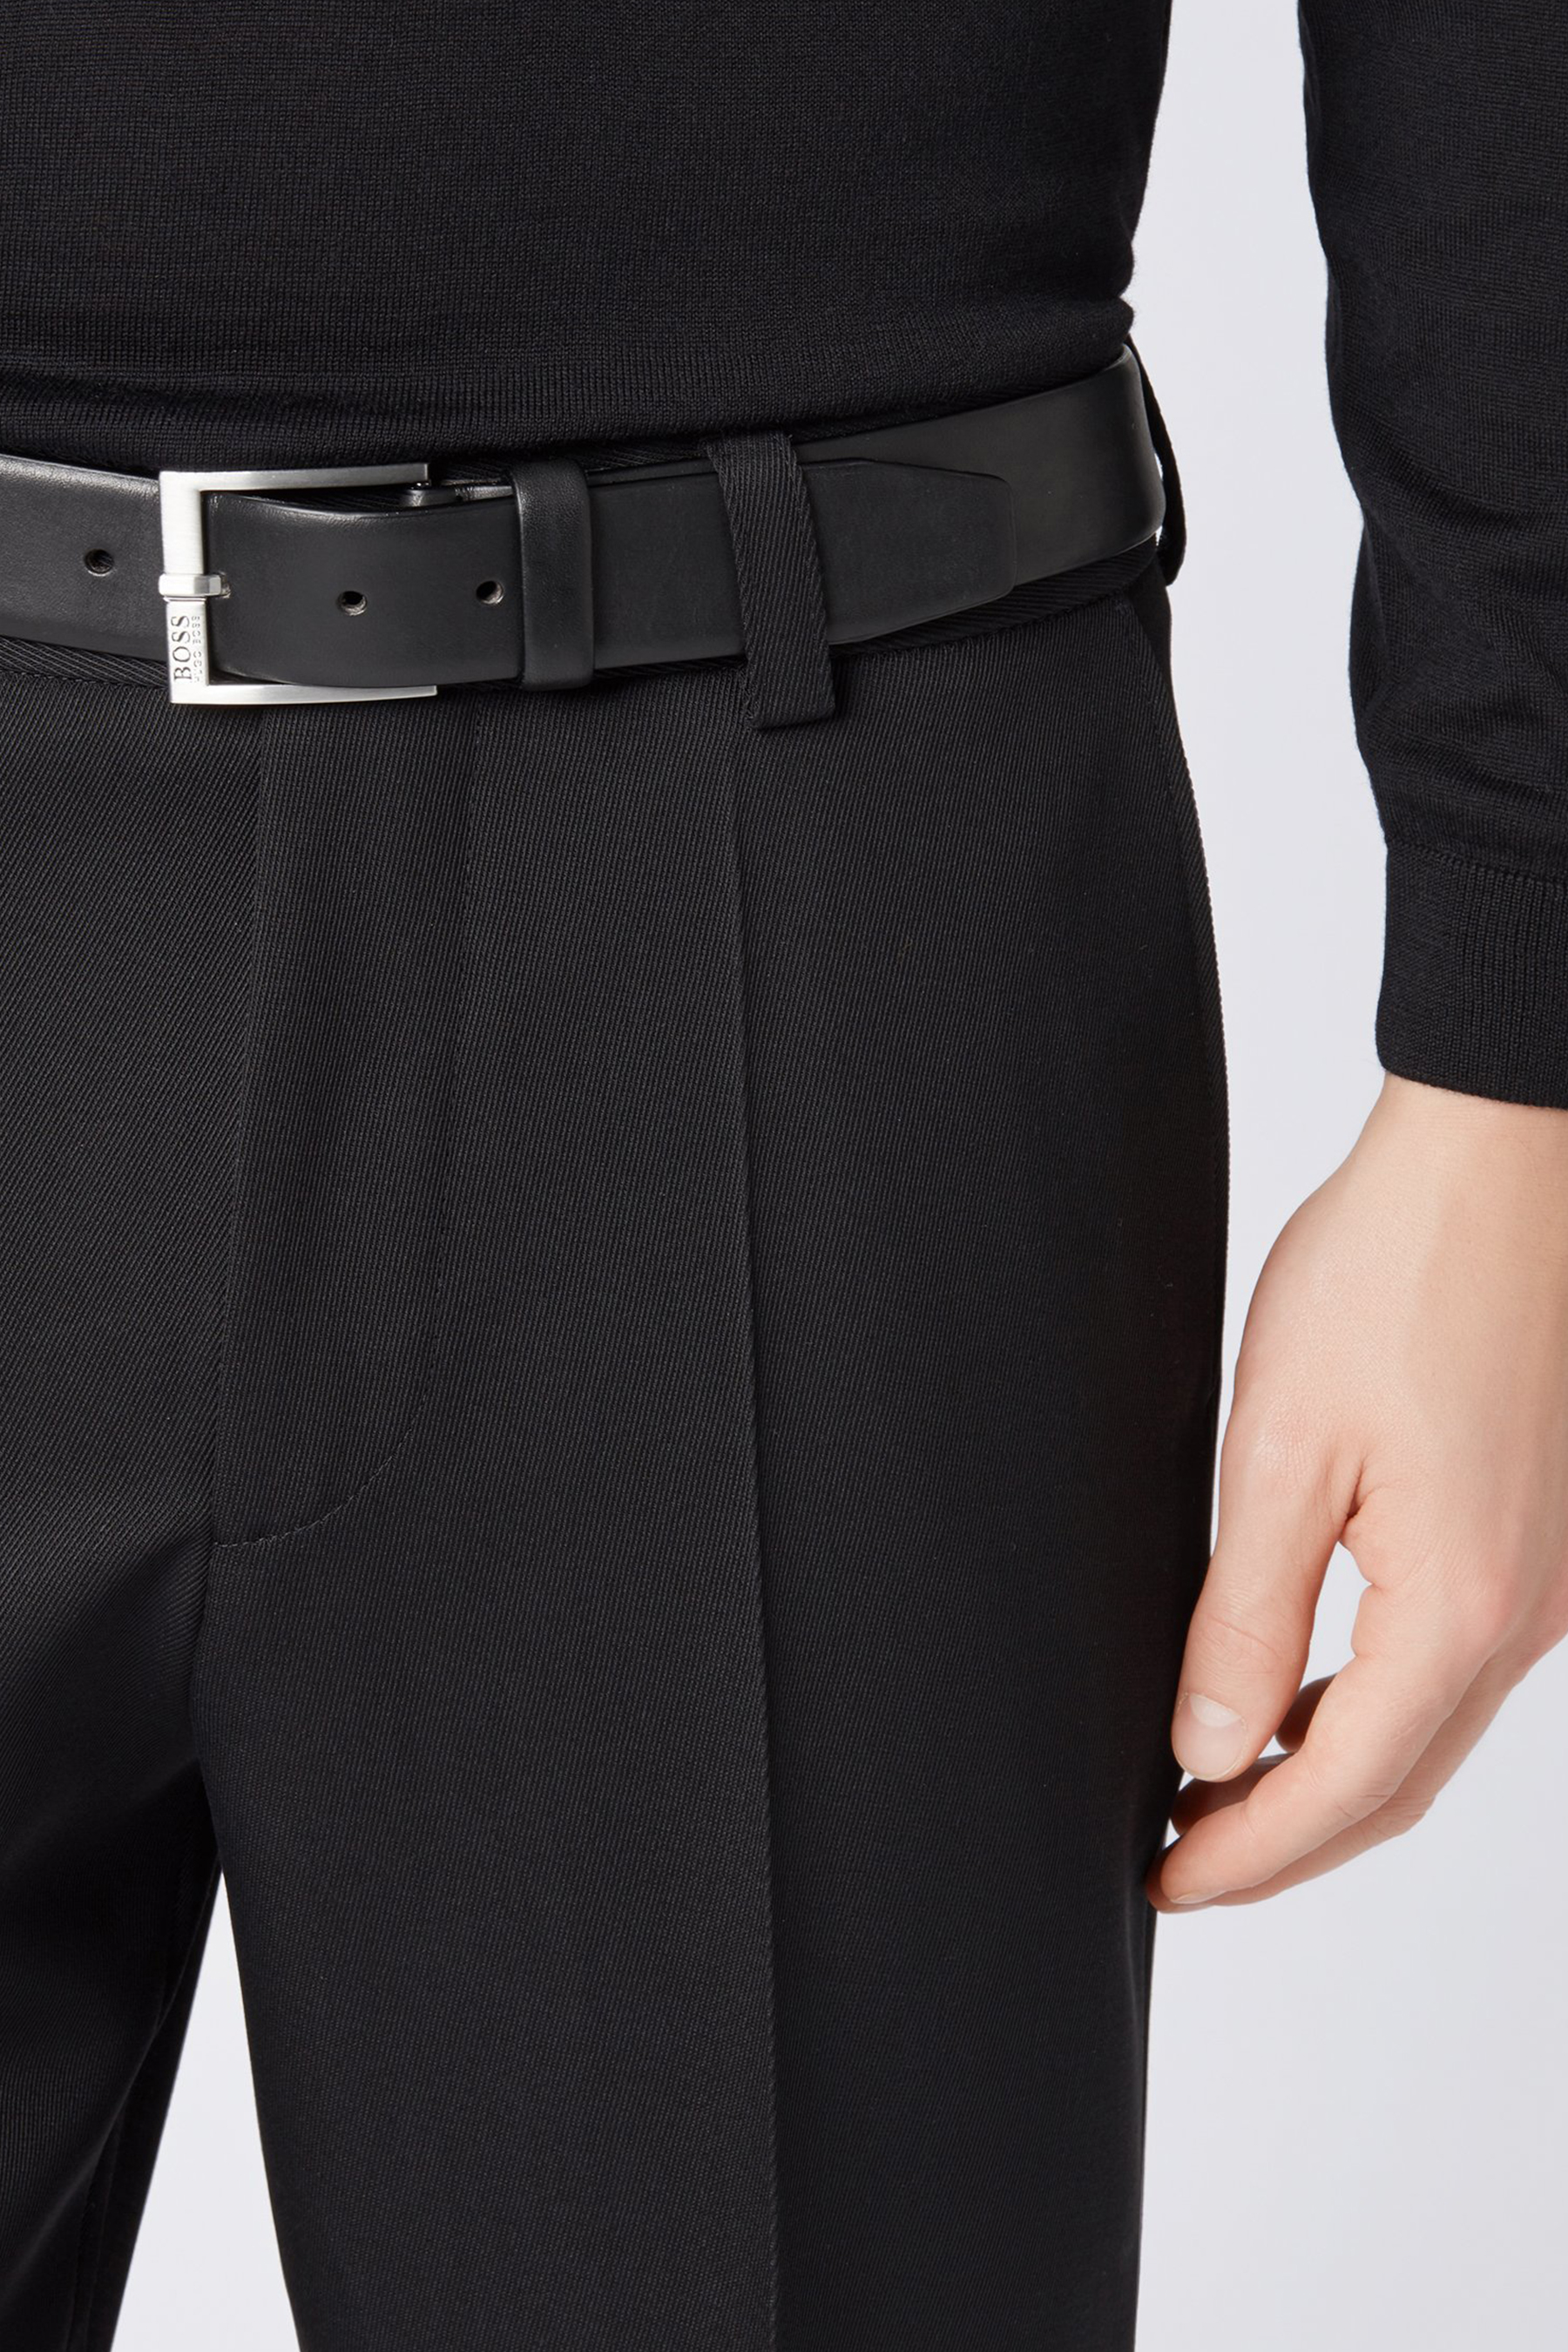 Smooth-leather belt with brushed-silver buckle BOSS | Belt | 50389781001